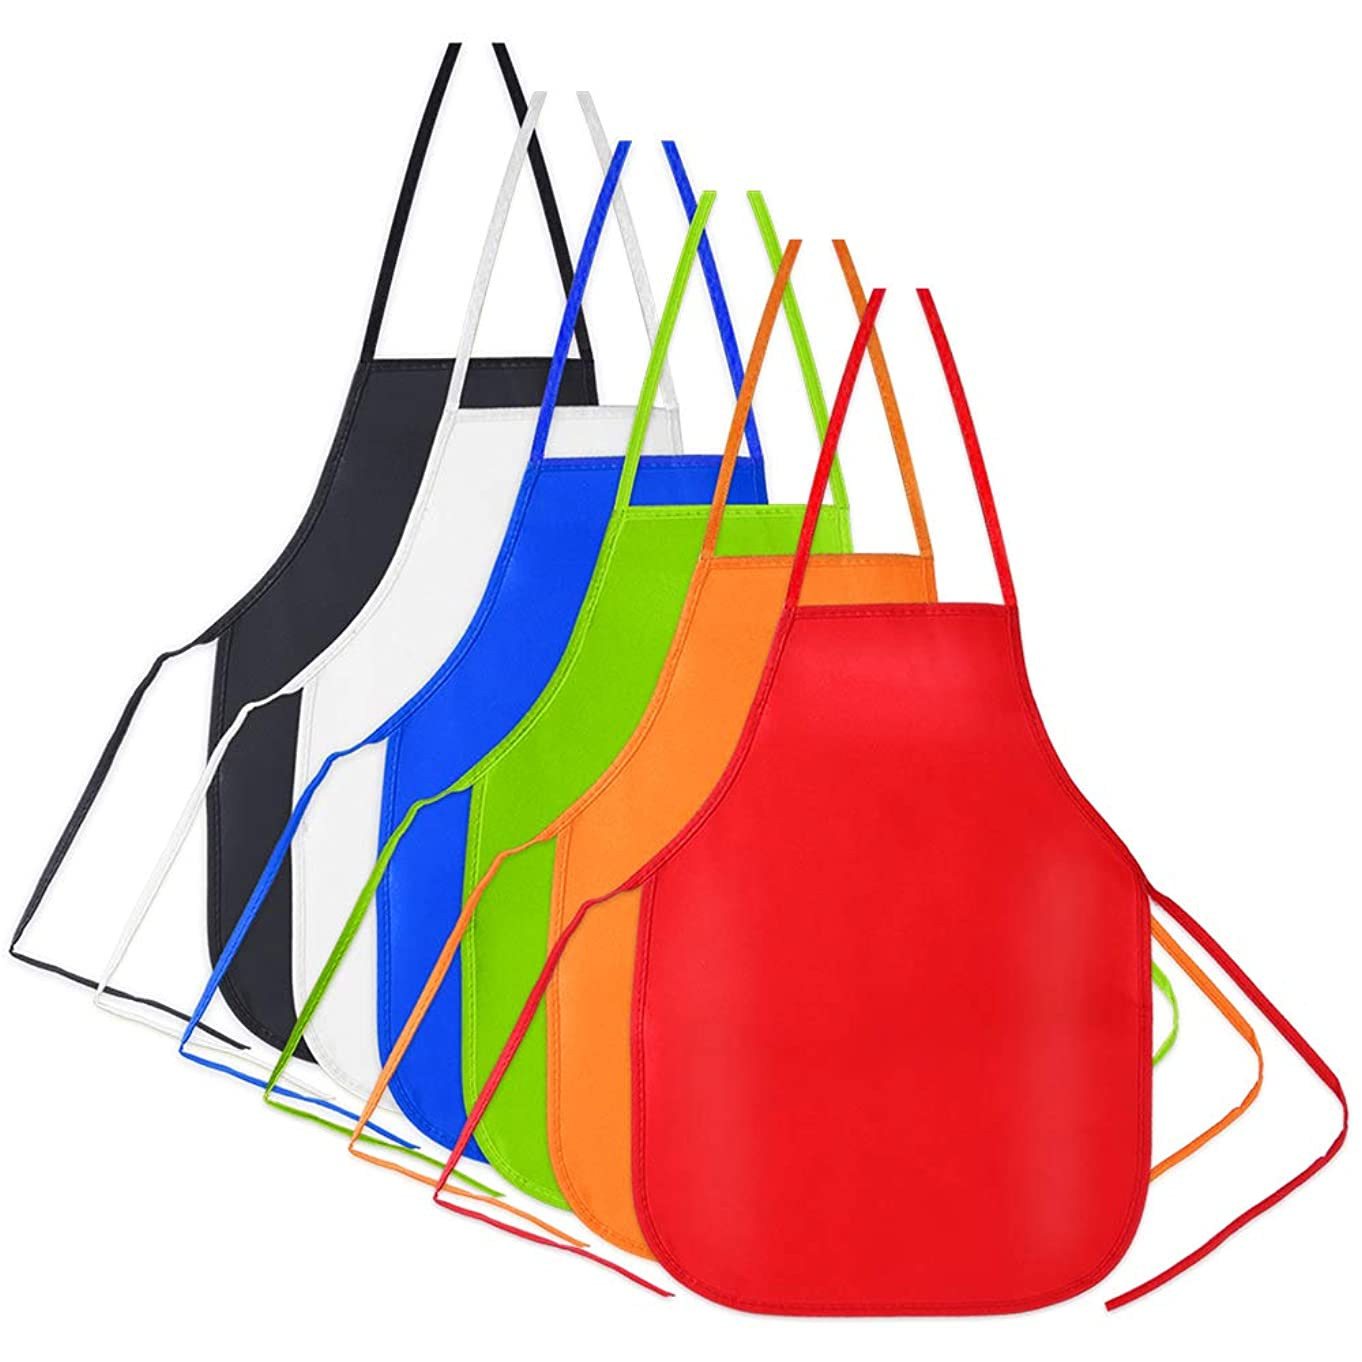 Caydo 6 Pack Middle Size Fabric Aprons for 5-10 Years Old Kids, Applied in Kitchen, Classroom, Community Event, Crafts and Art Painting Activity